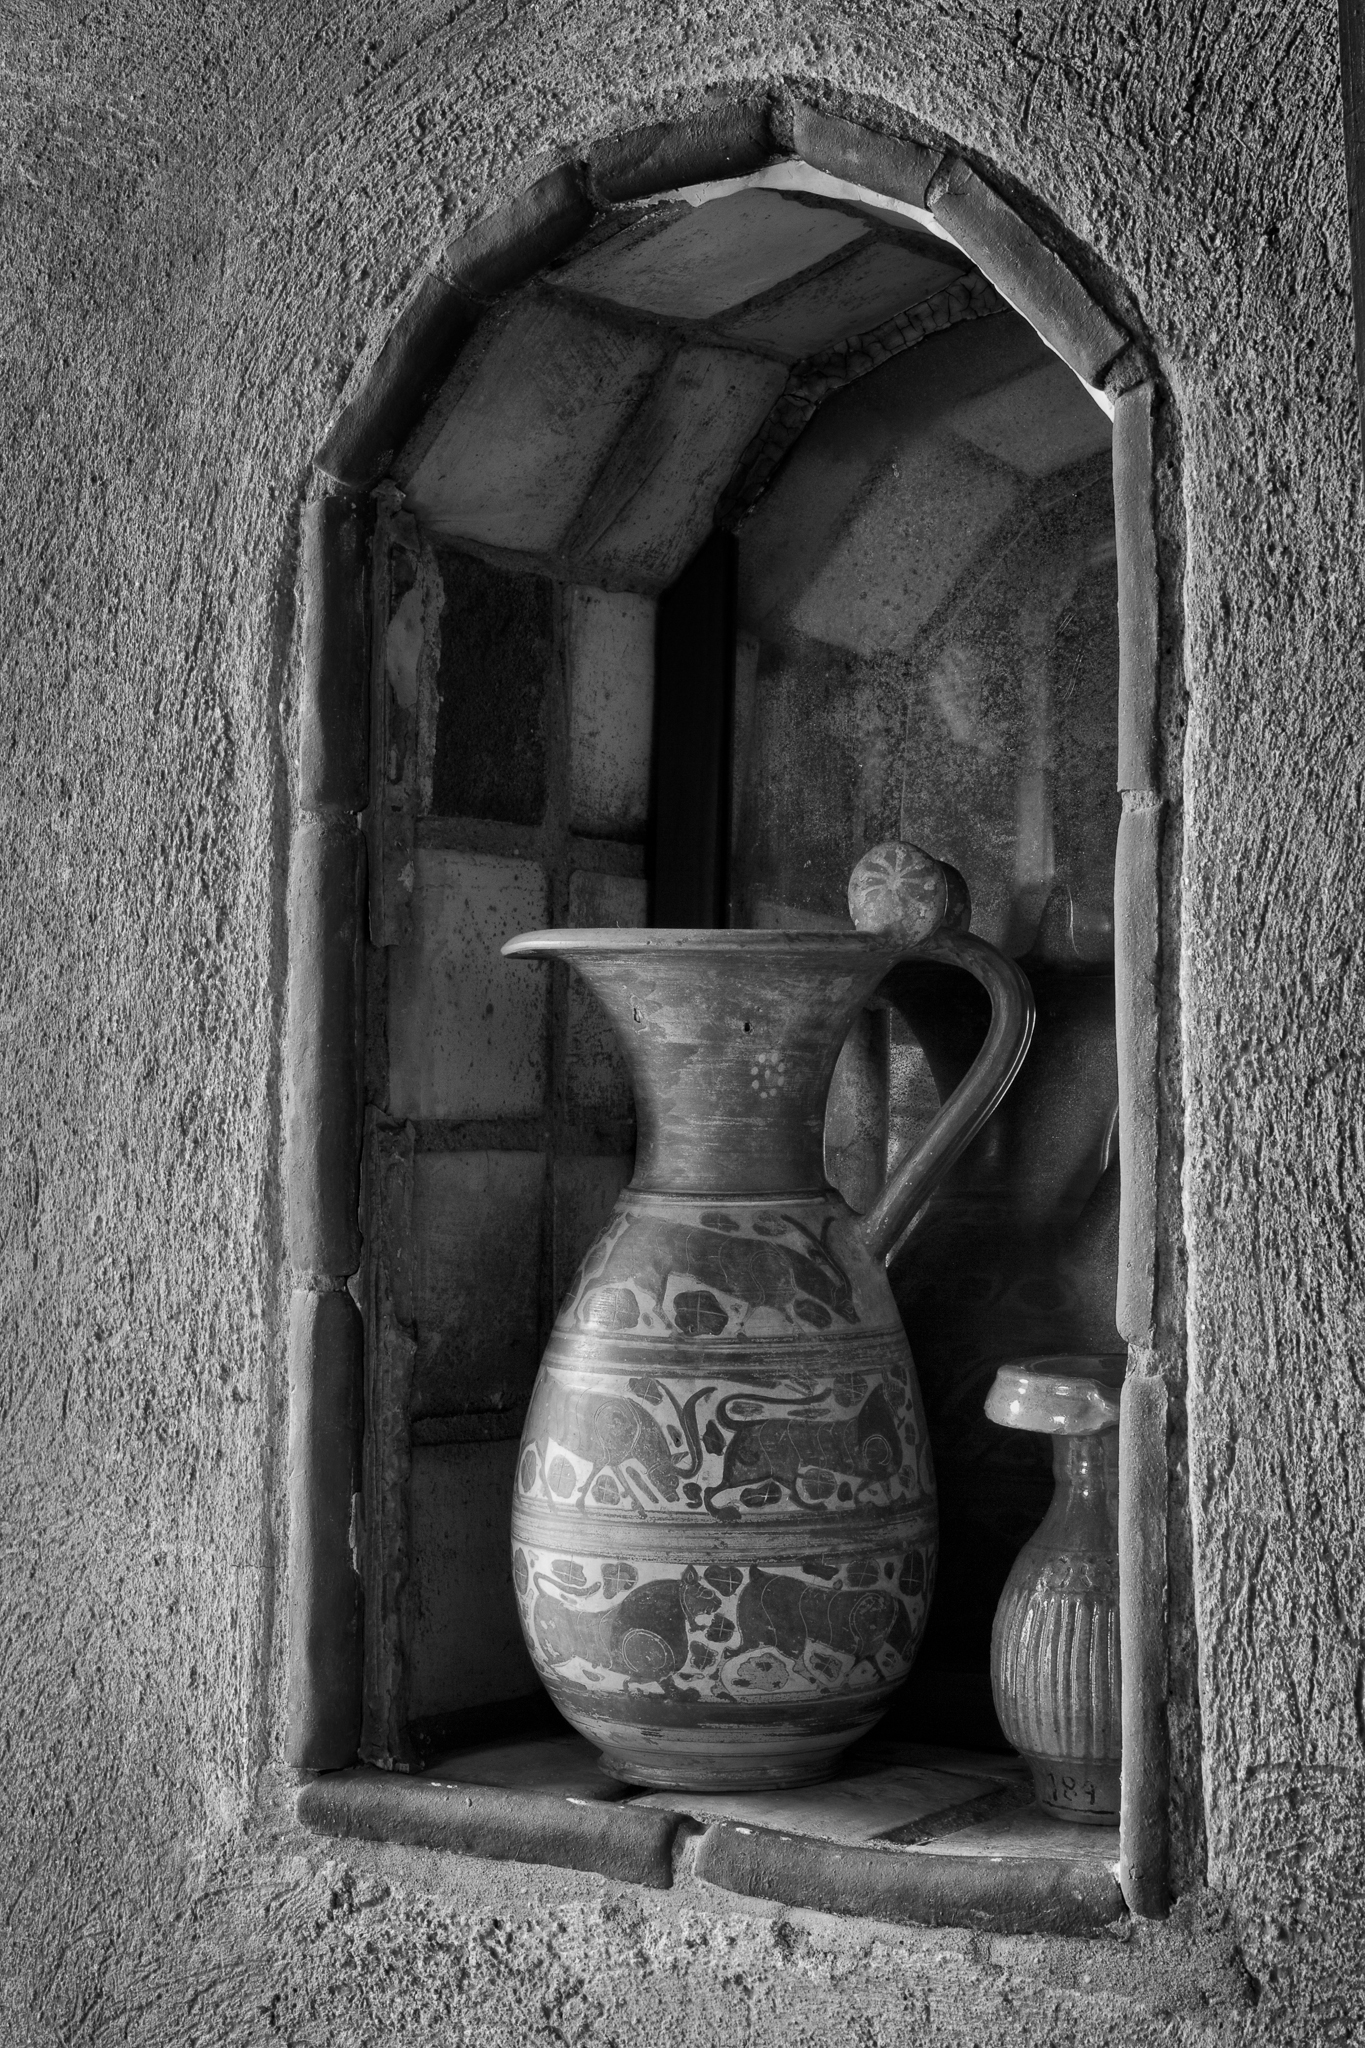 130519_Fonthill_Pitcher in Alcove by 2013.